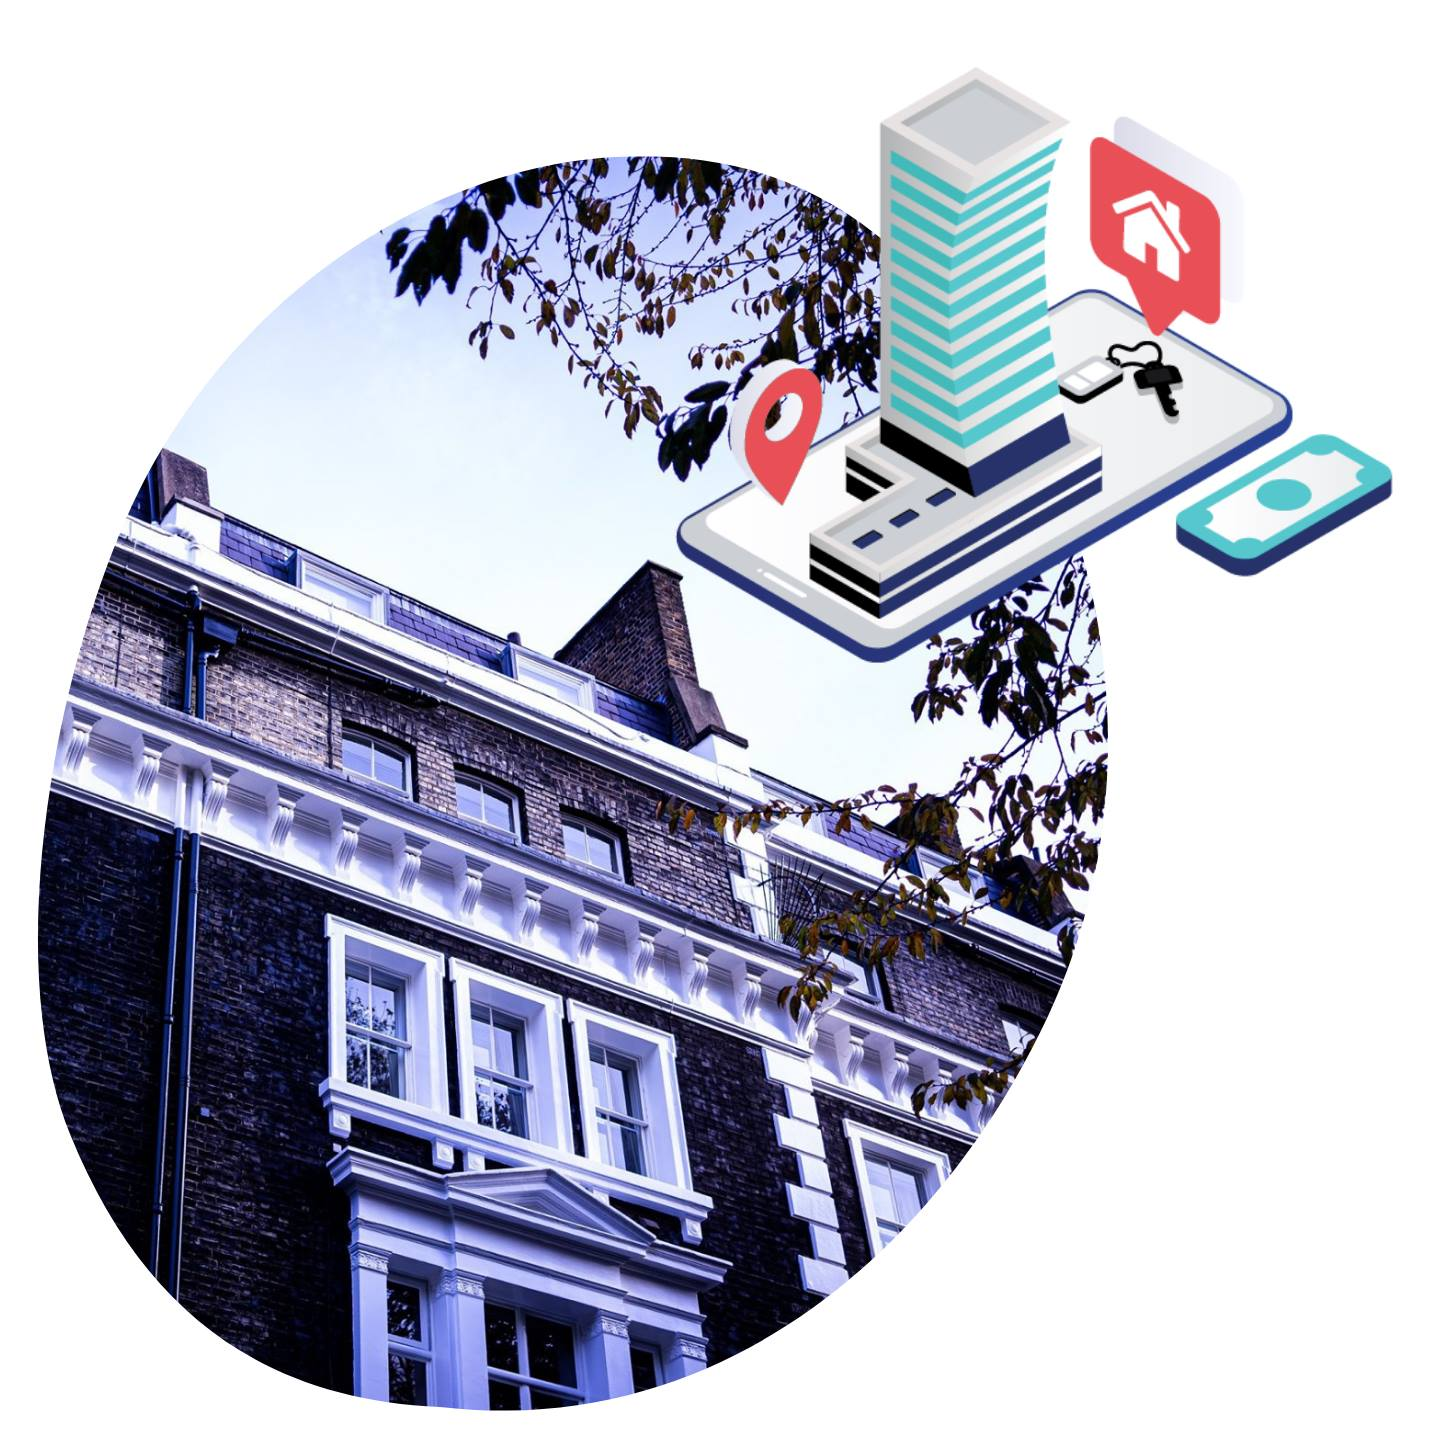 London Residential Property Management services